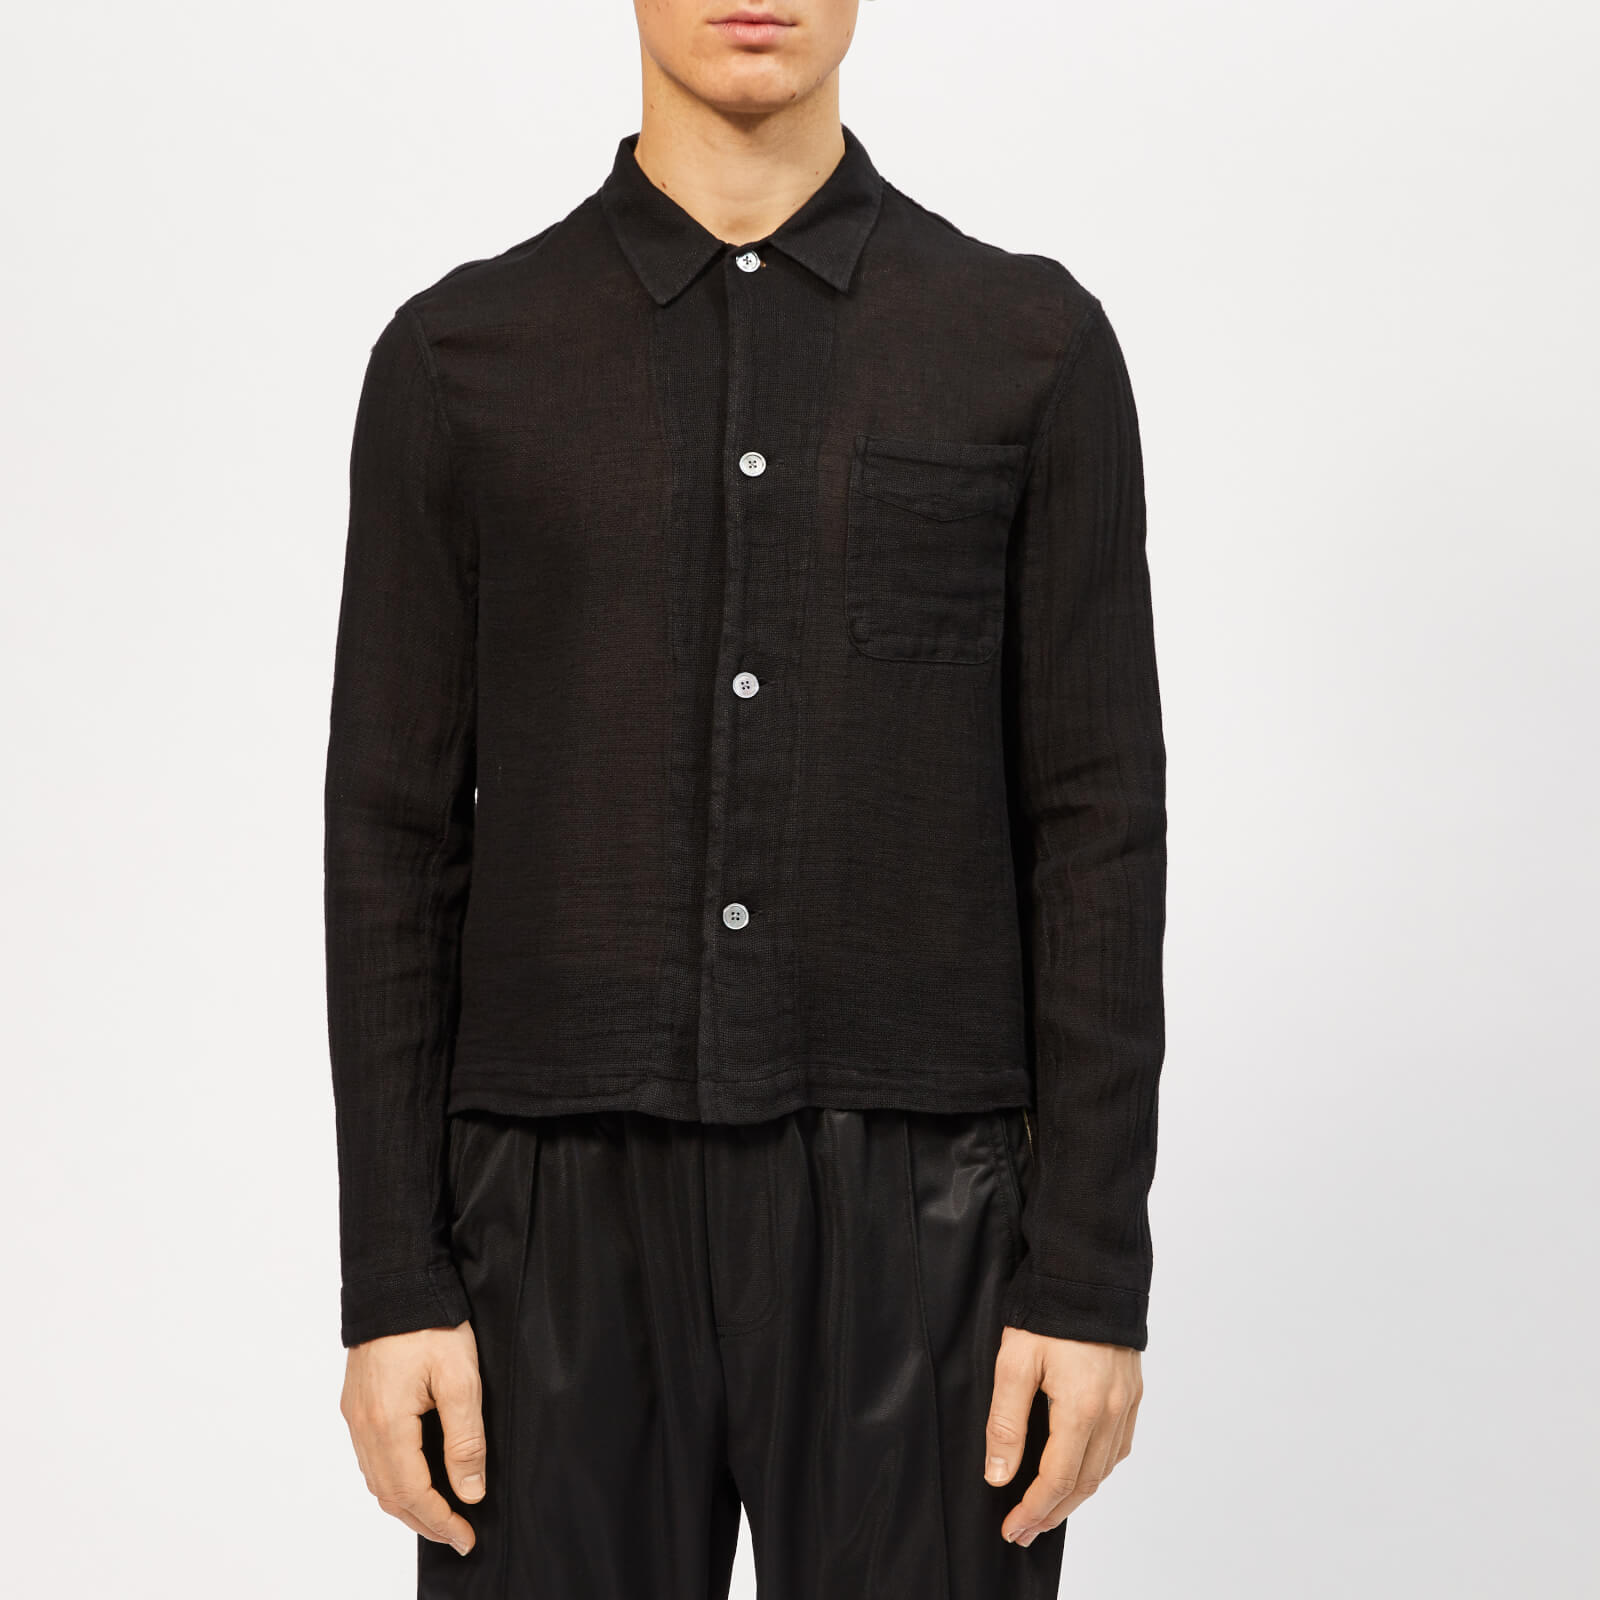 7d1549b12978a Our Legacy Men s Shrunken Shirt - Black Cloth - Free UK Delivery over £50